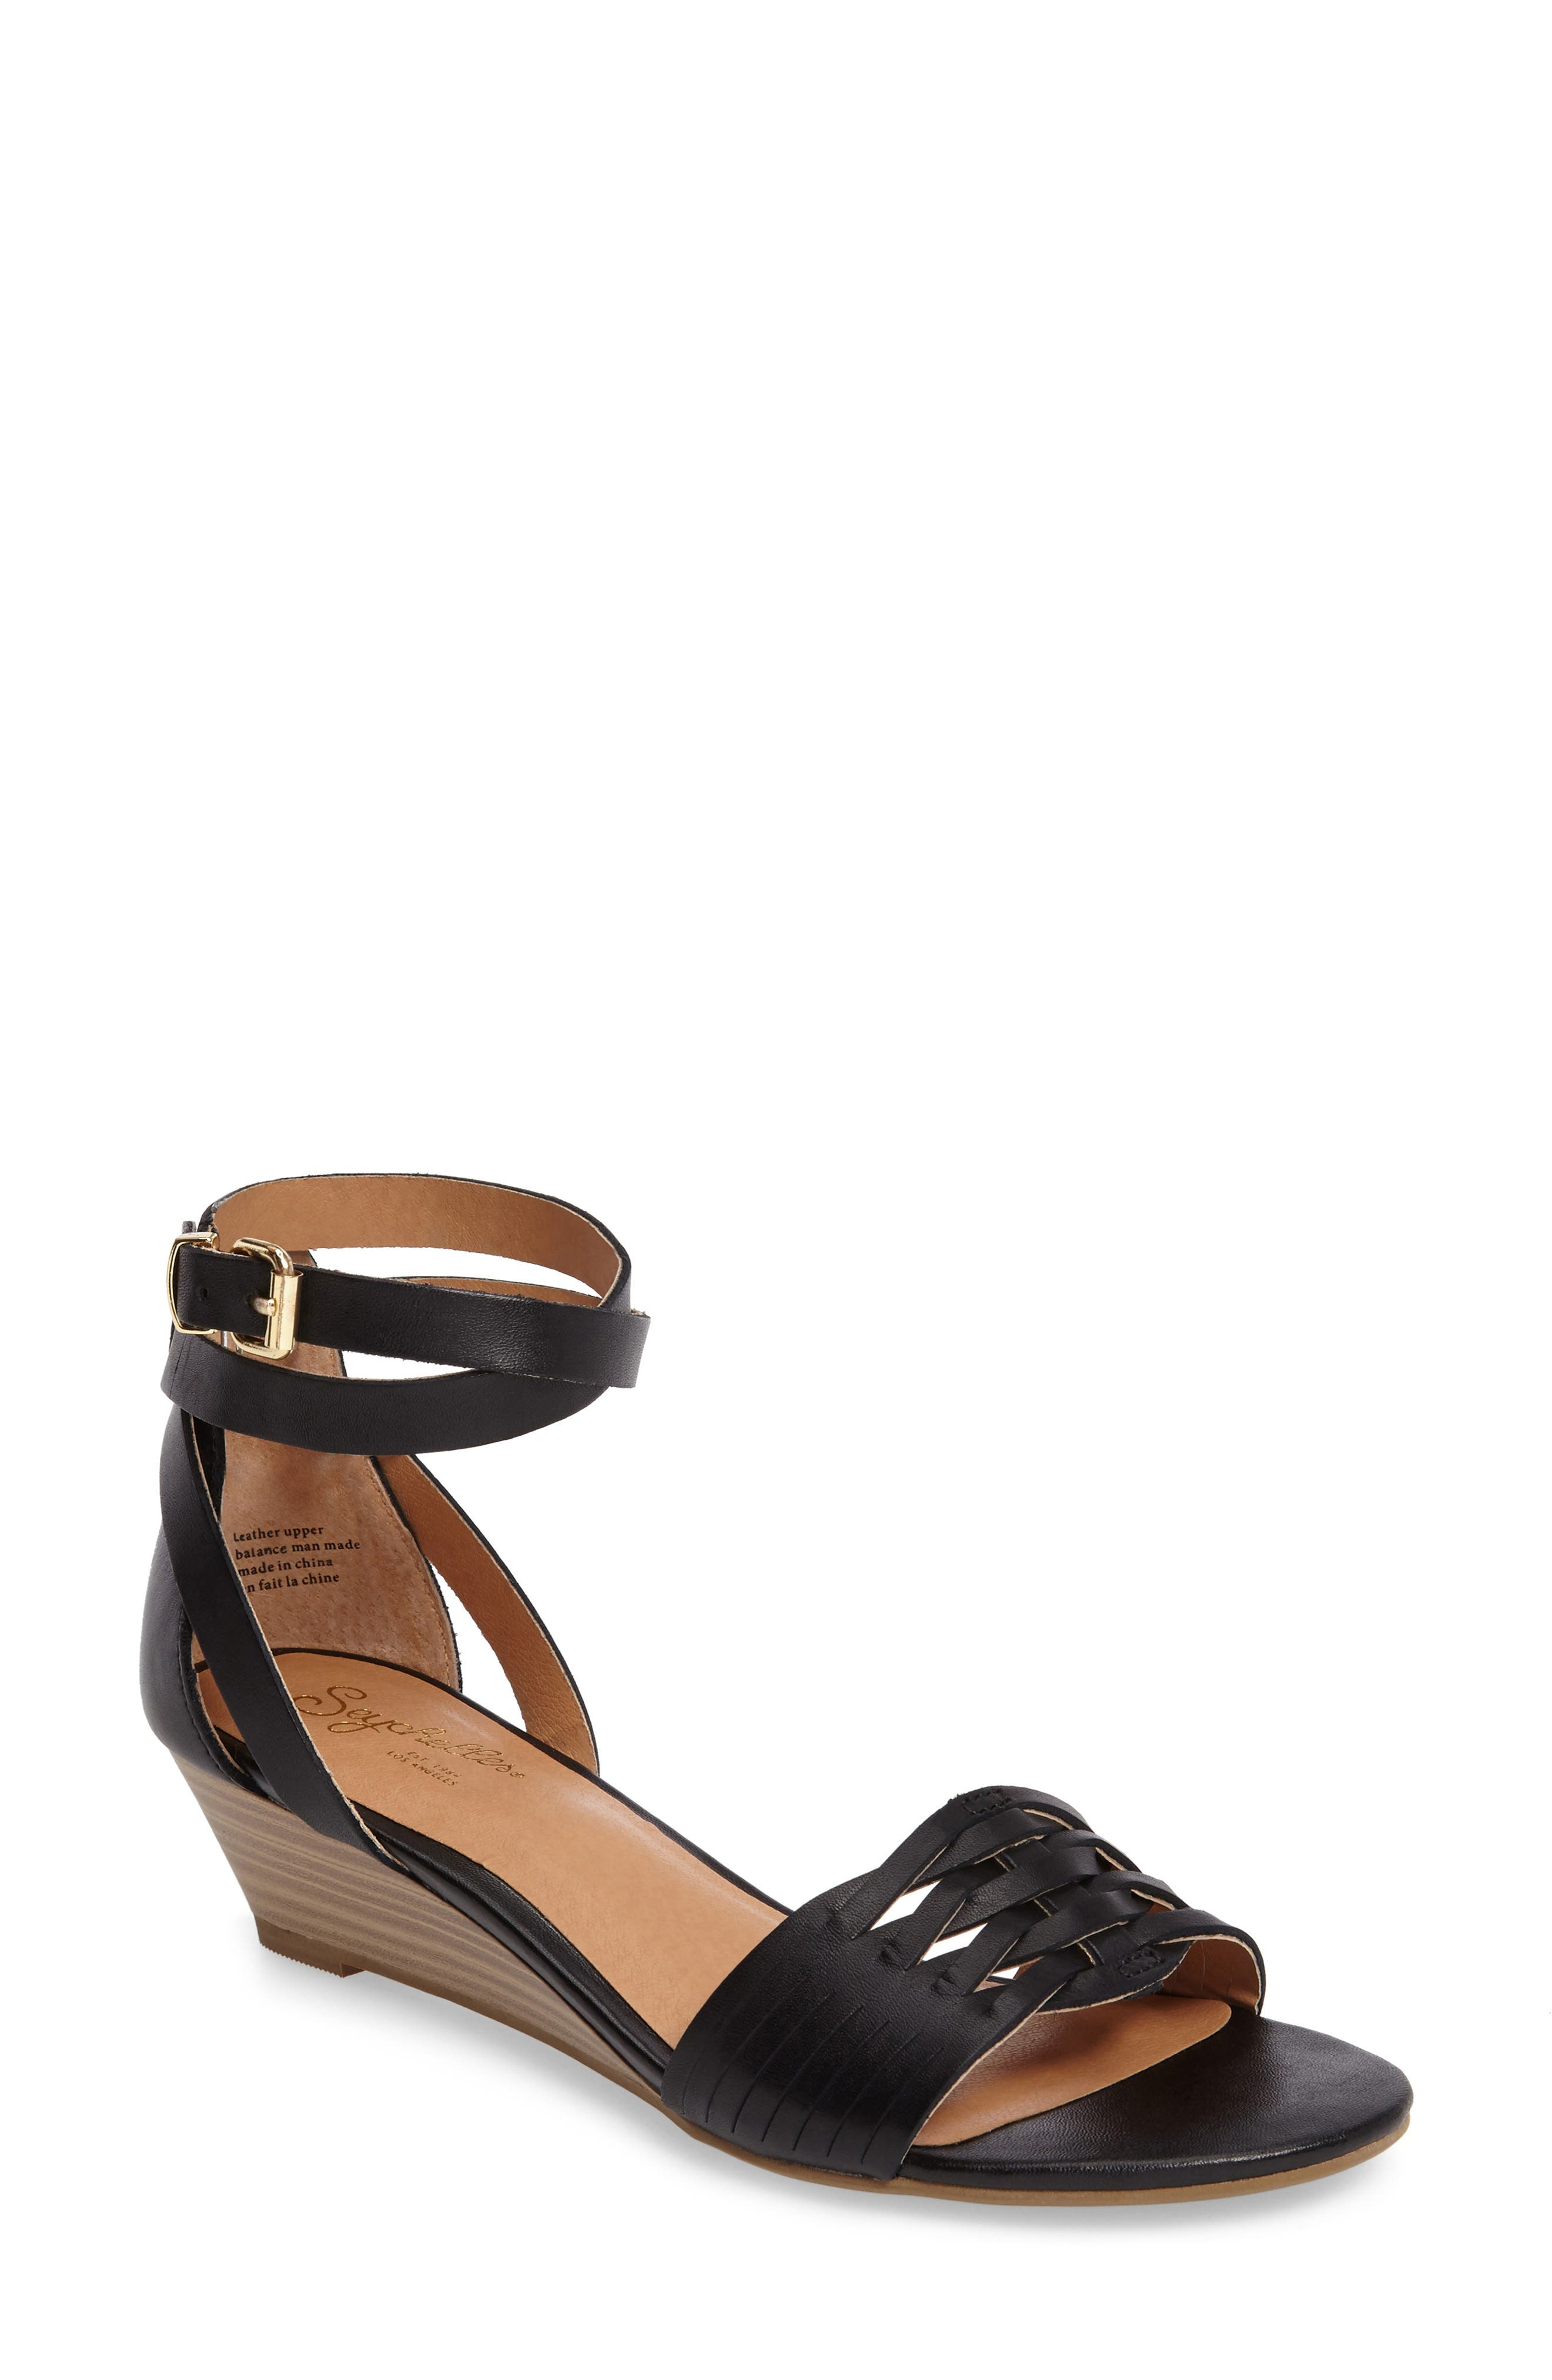 Sincere Wraparound Wedge Sandal,                             Main thumbnail 1, color,